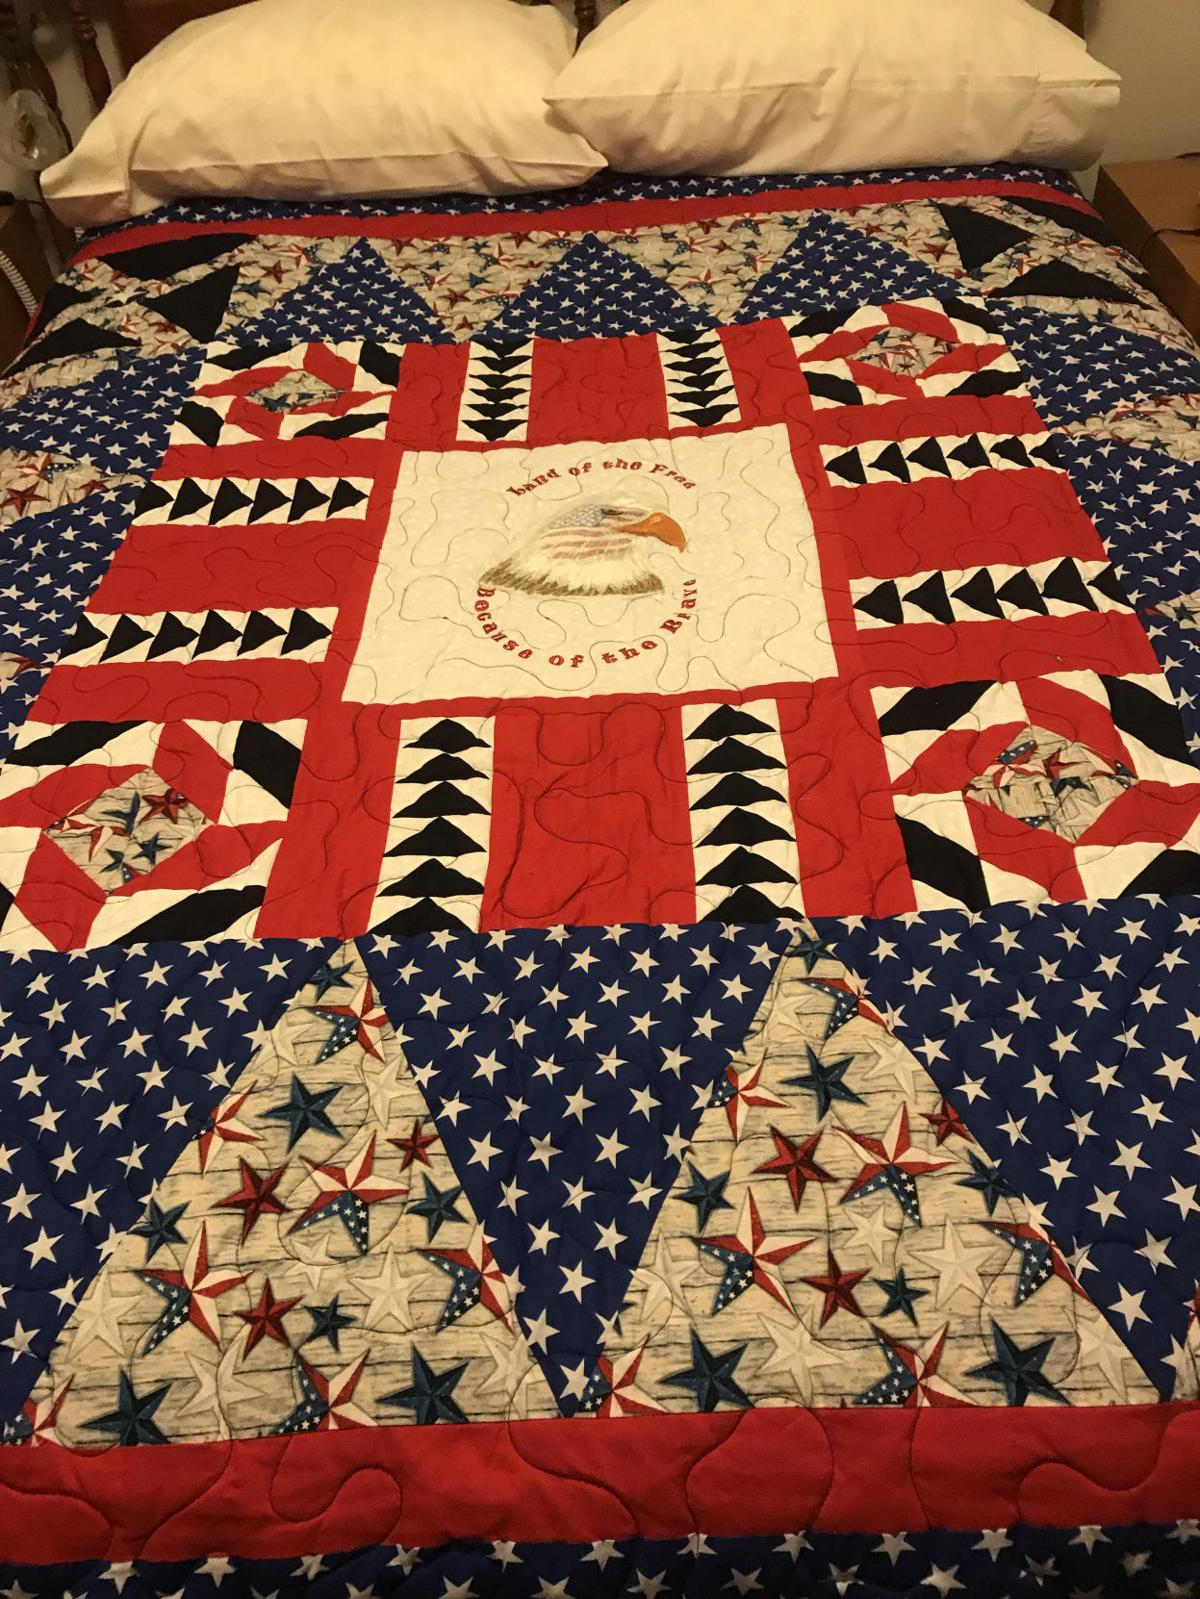 Donald Henke proudly displays his Quilt of Valor